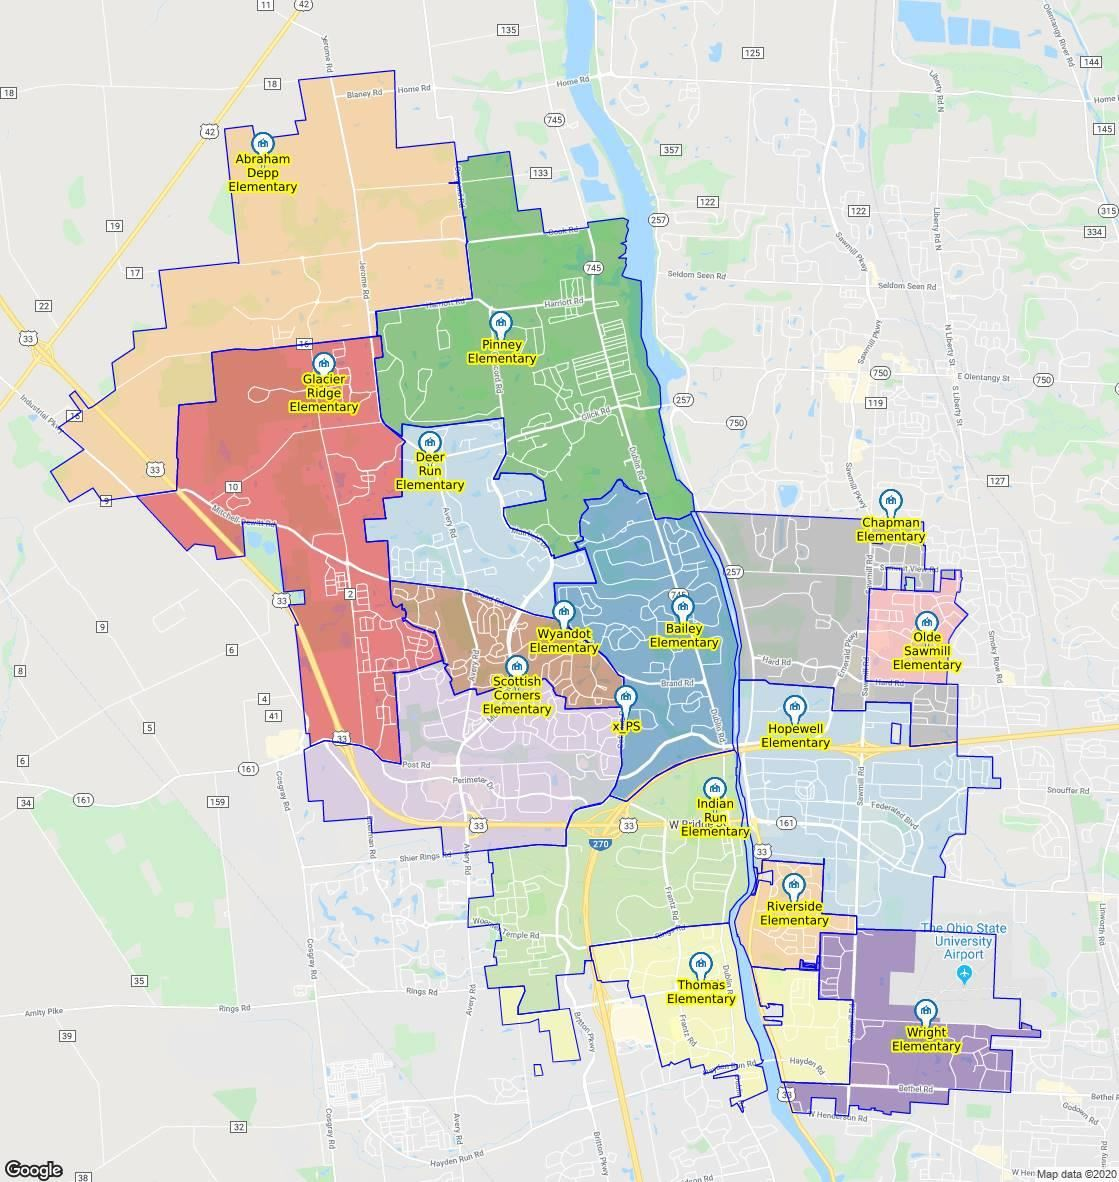 Elementary School Attendance Boundary map